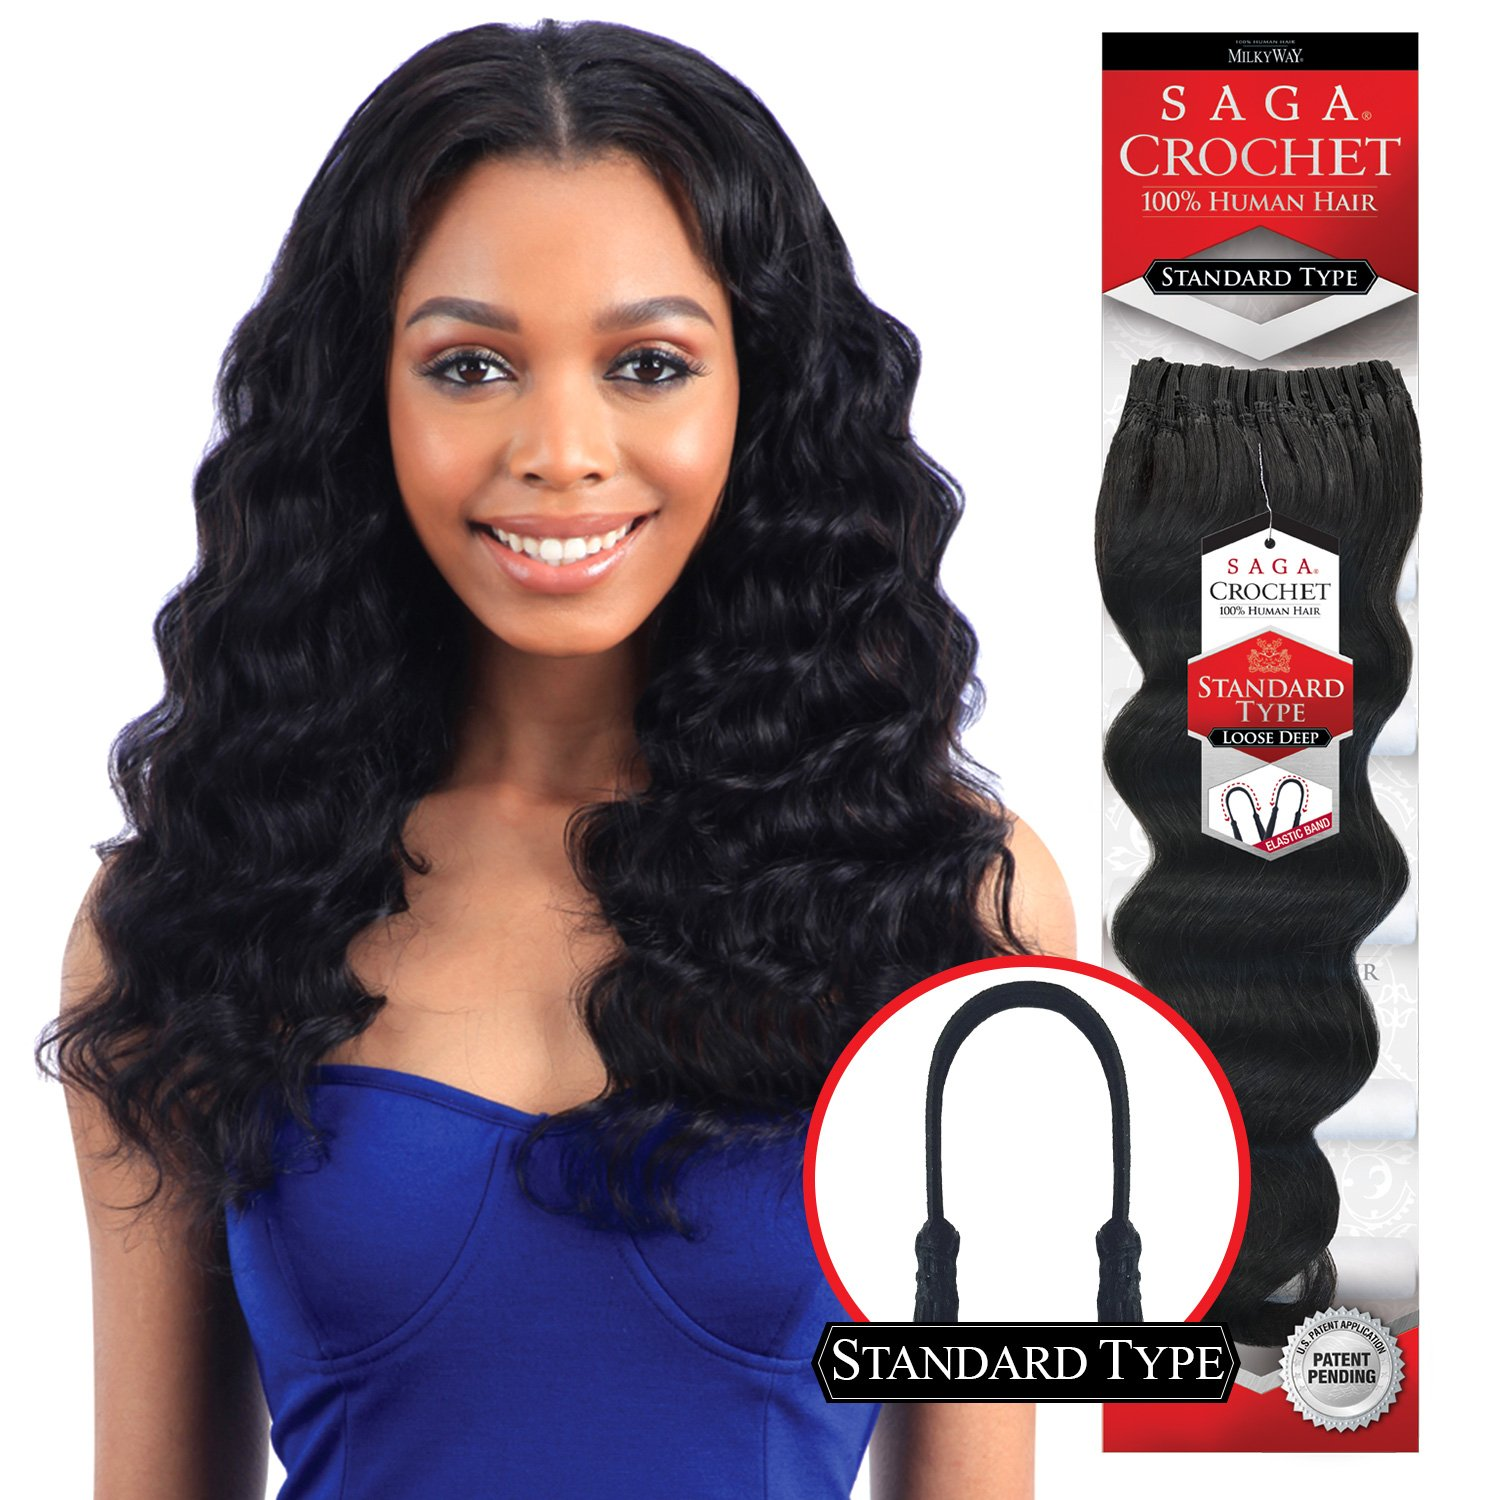 Amazon.com : MULTI-PACK DEALS! Saga Human Hair Crochet